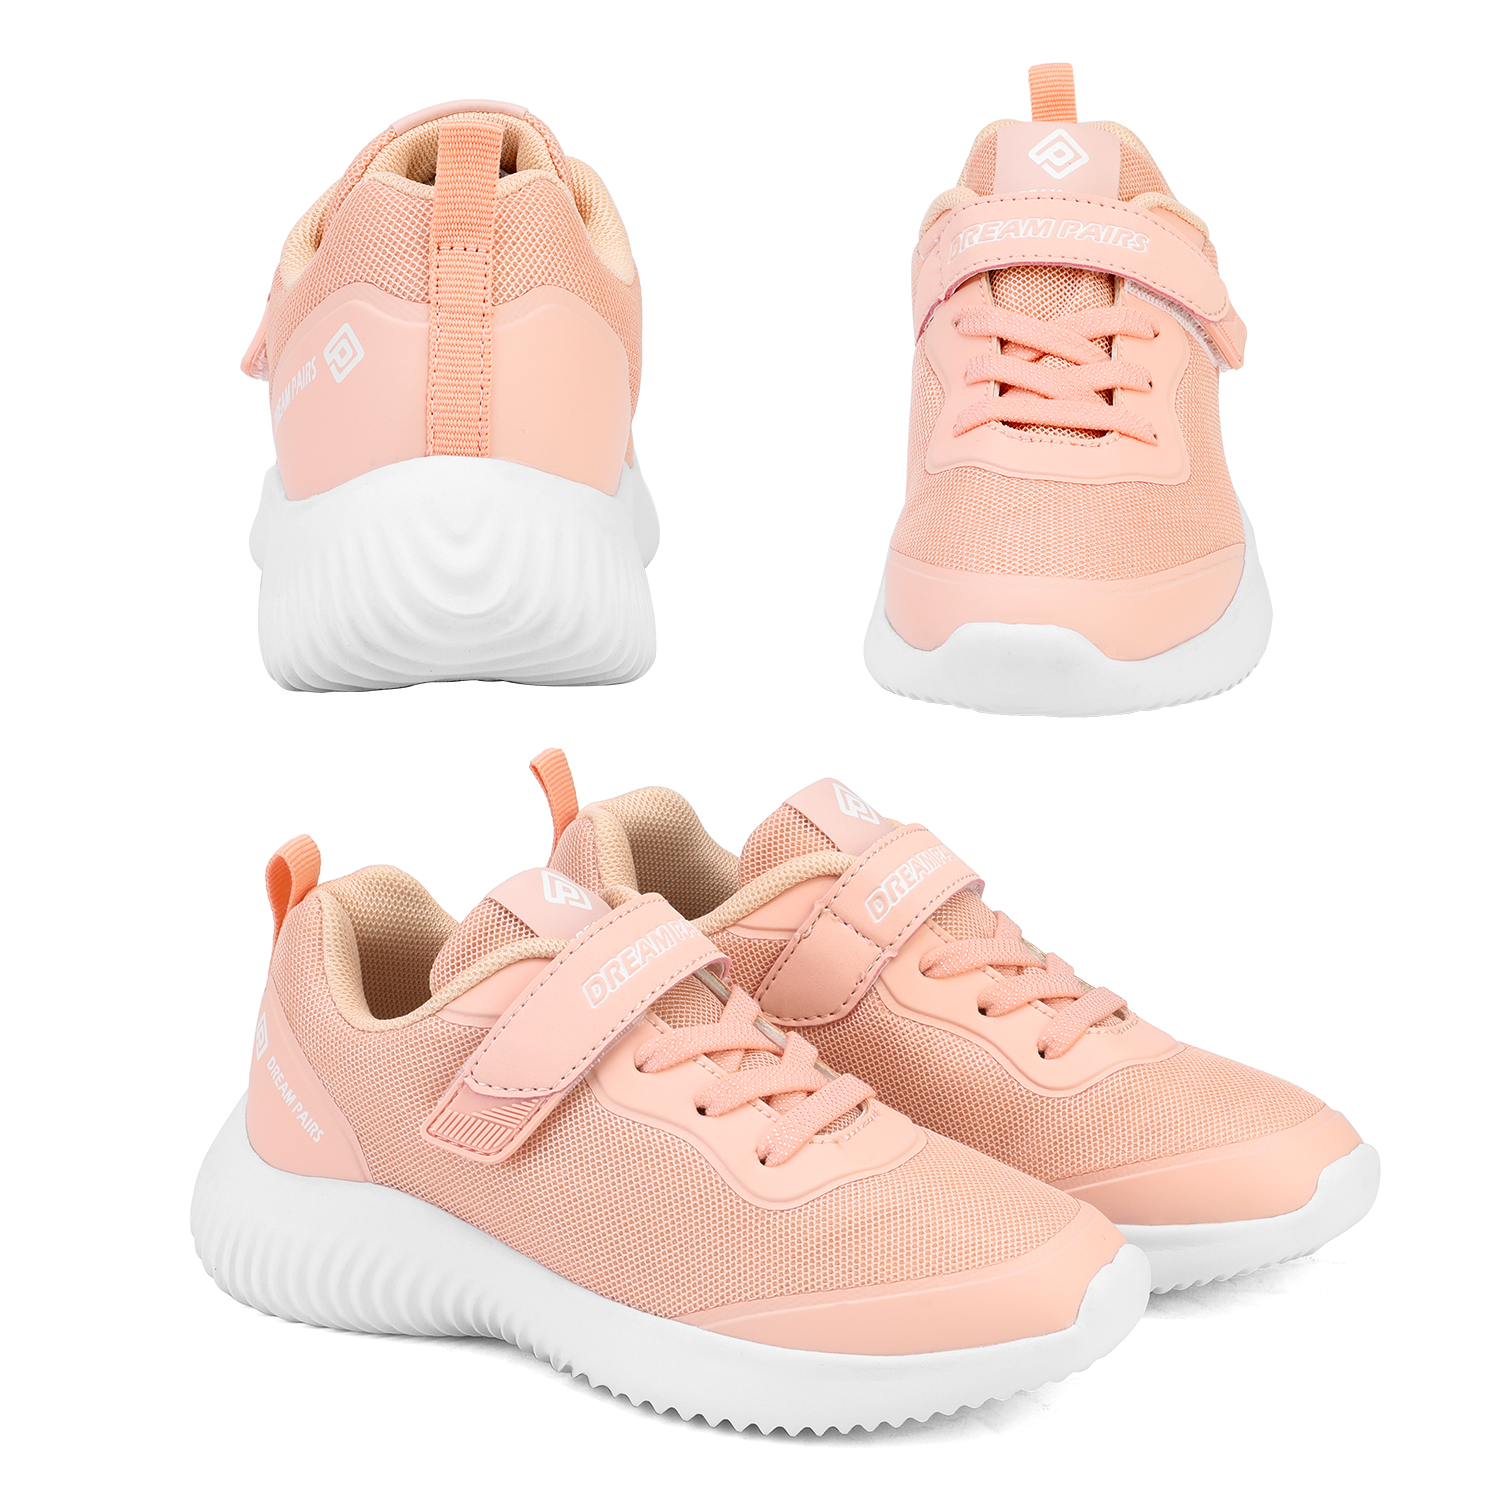 DREAM PAIRS Kids Sneakers Girls Boys Running Shoes Outdoor Indoor Athletic Shoes